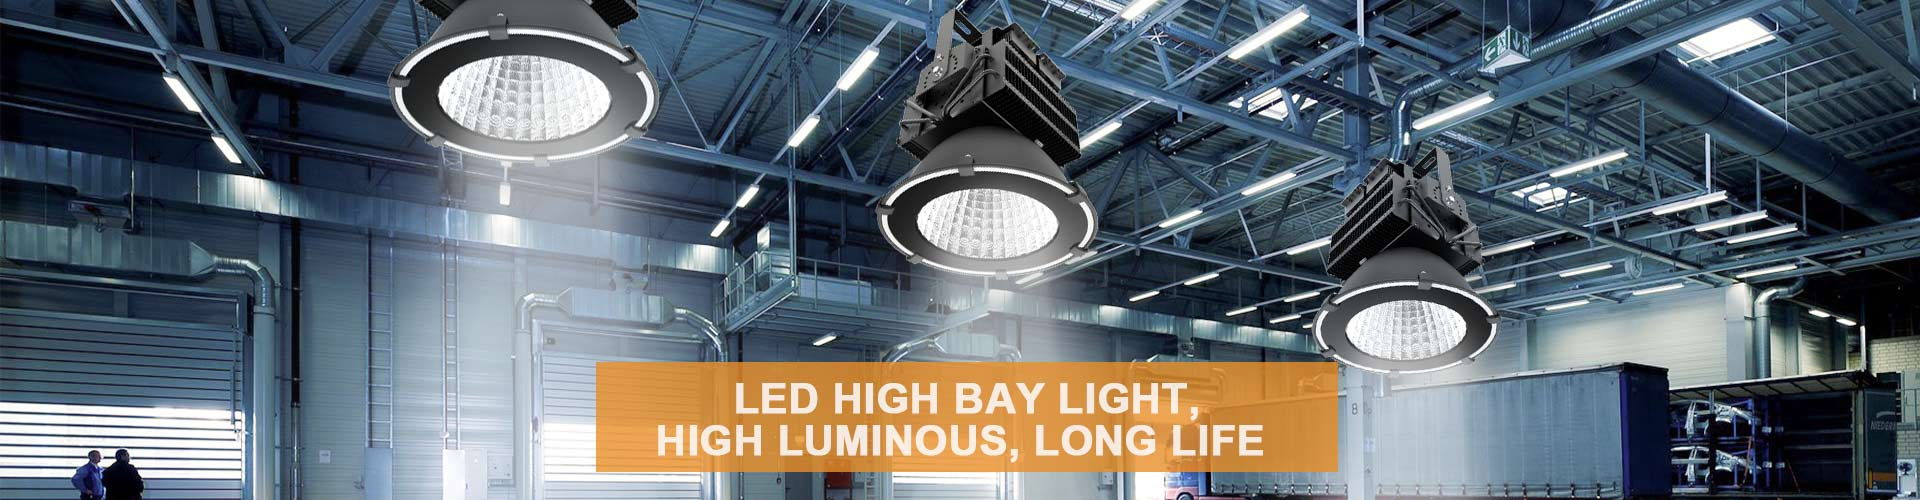 LED high bay light industrial factory